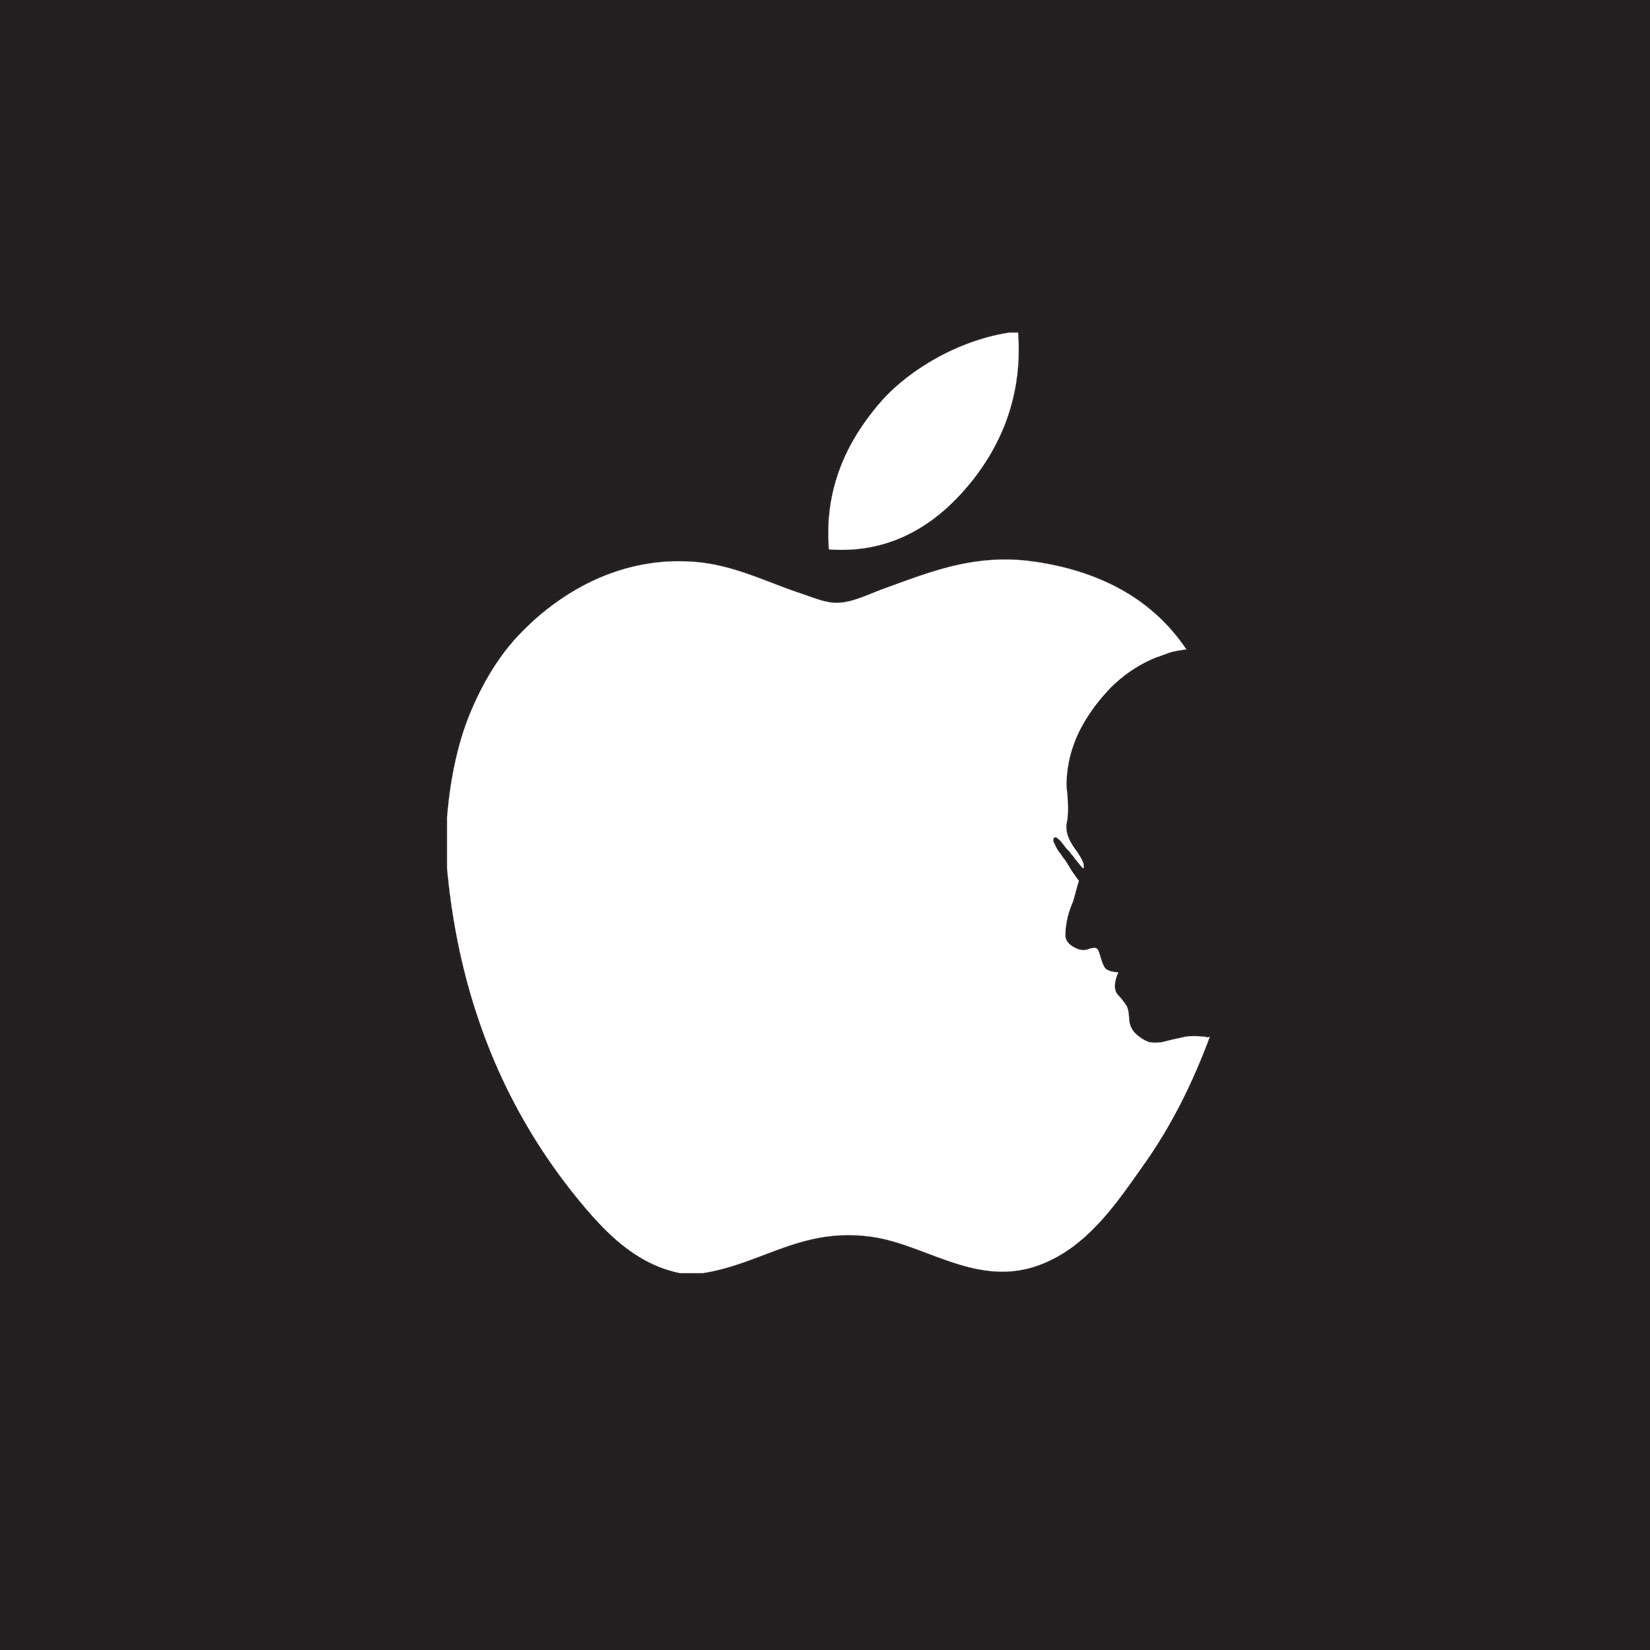 Grieving Apple fans took comfort in this tribute to Steve Jobs and turned it into a viral phenomena.